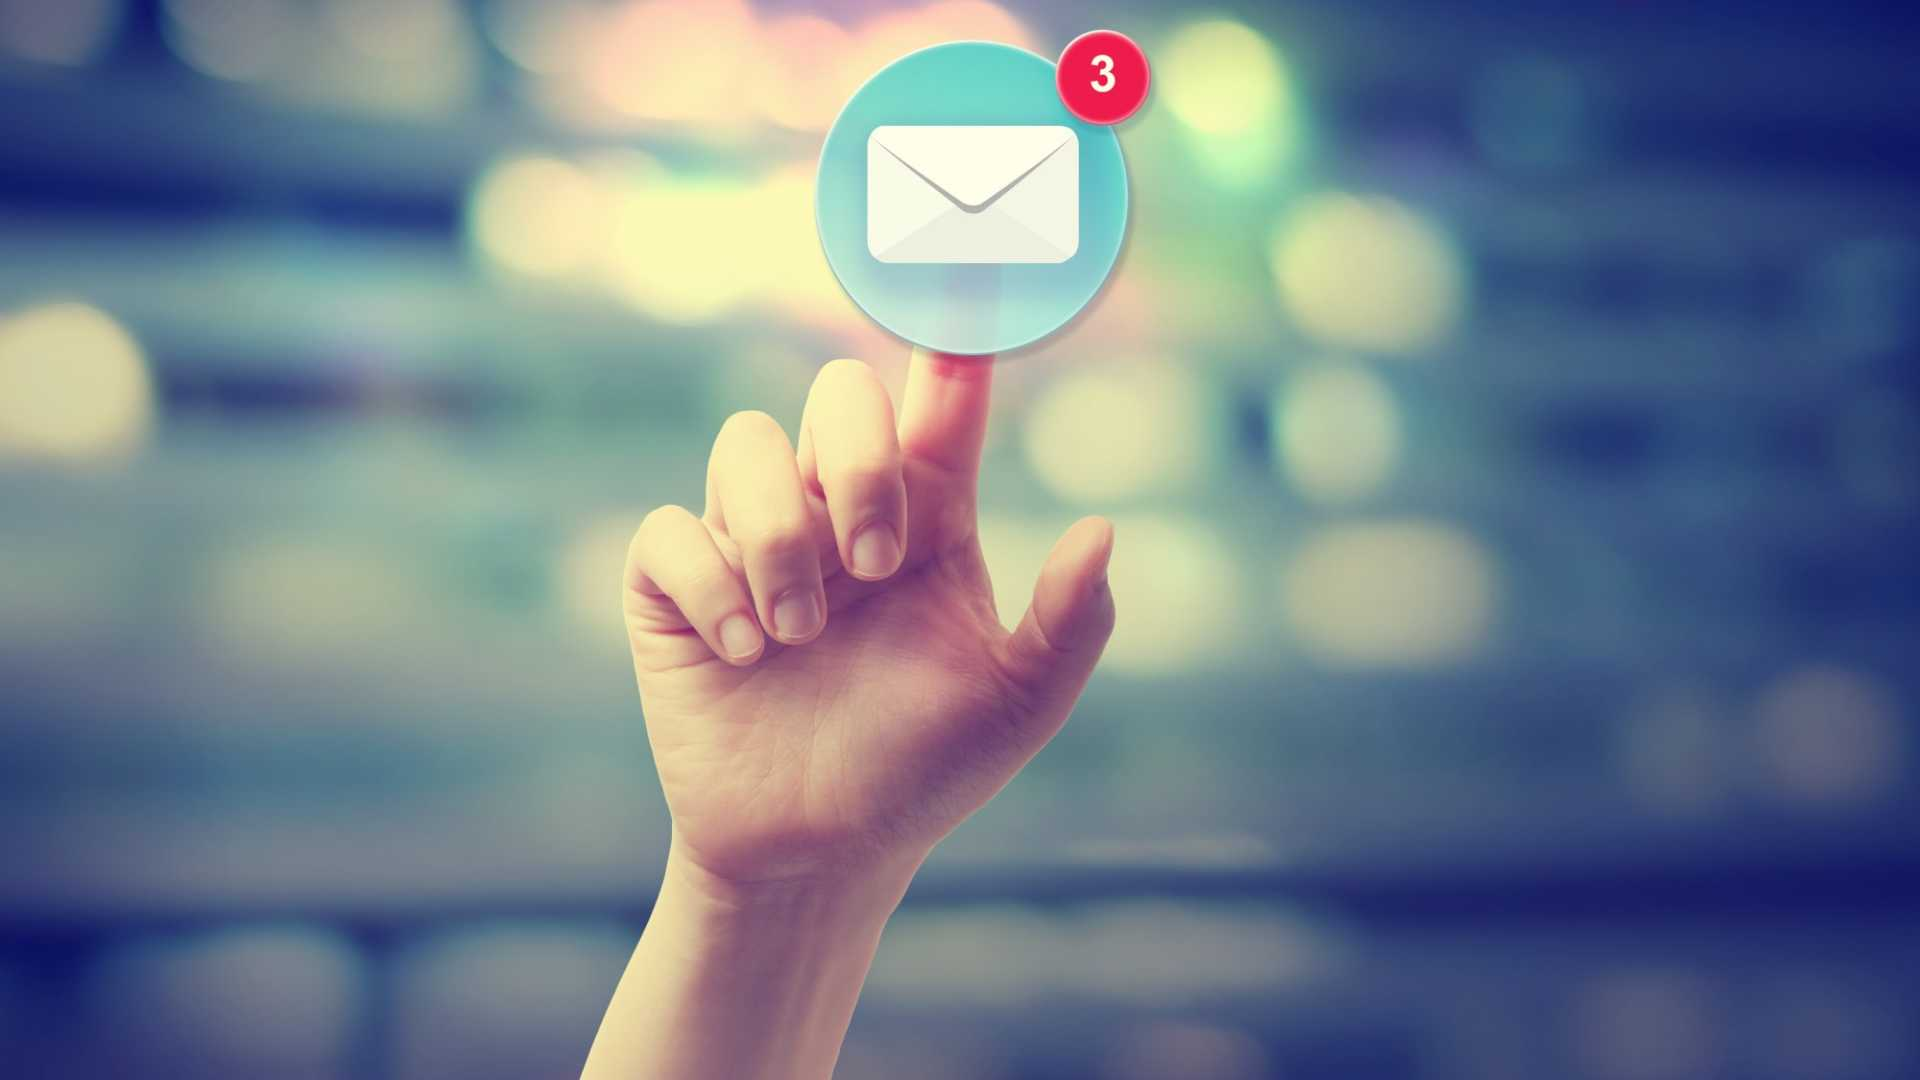 3 Guidelines to Up Your Email Etiquette and Close More Deals